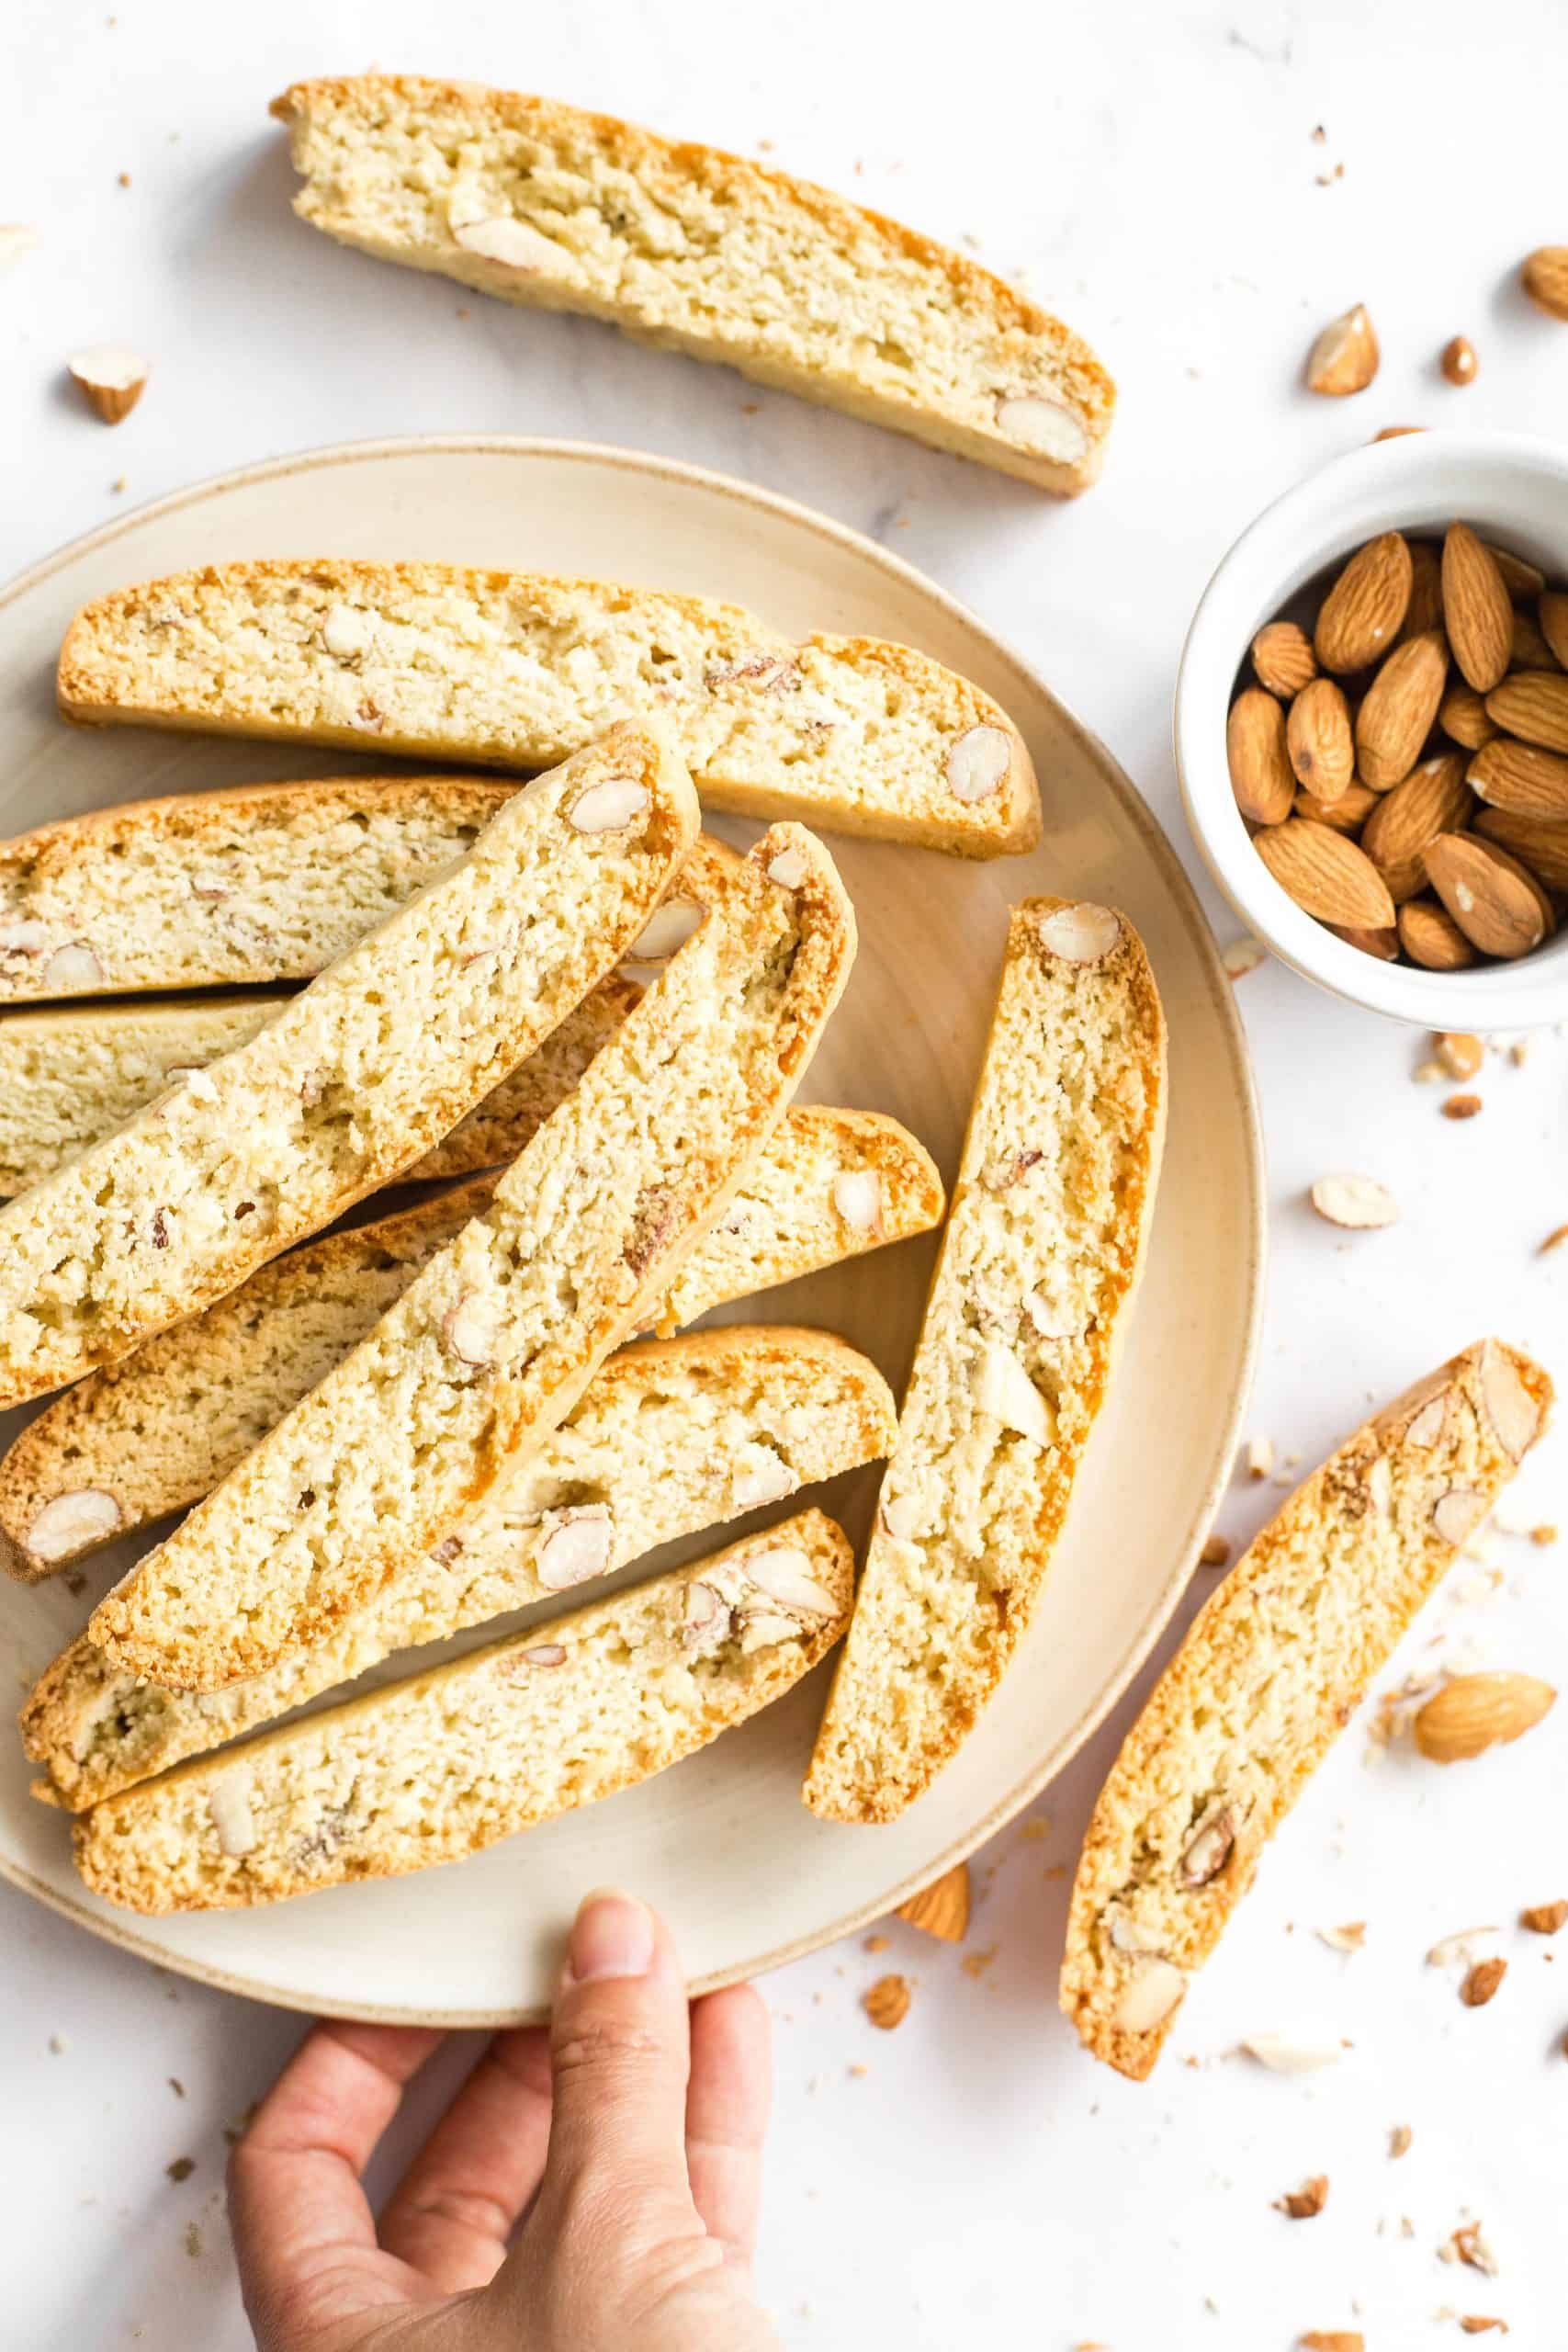 A plate of almond biscotti and raw almonds on a marble board.